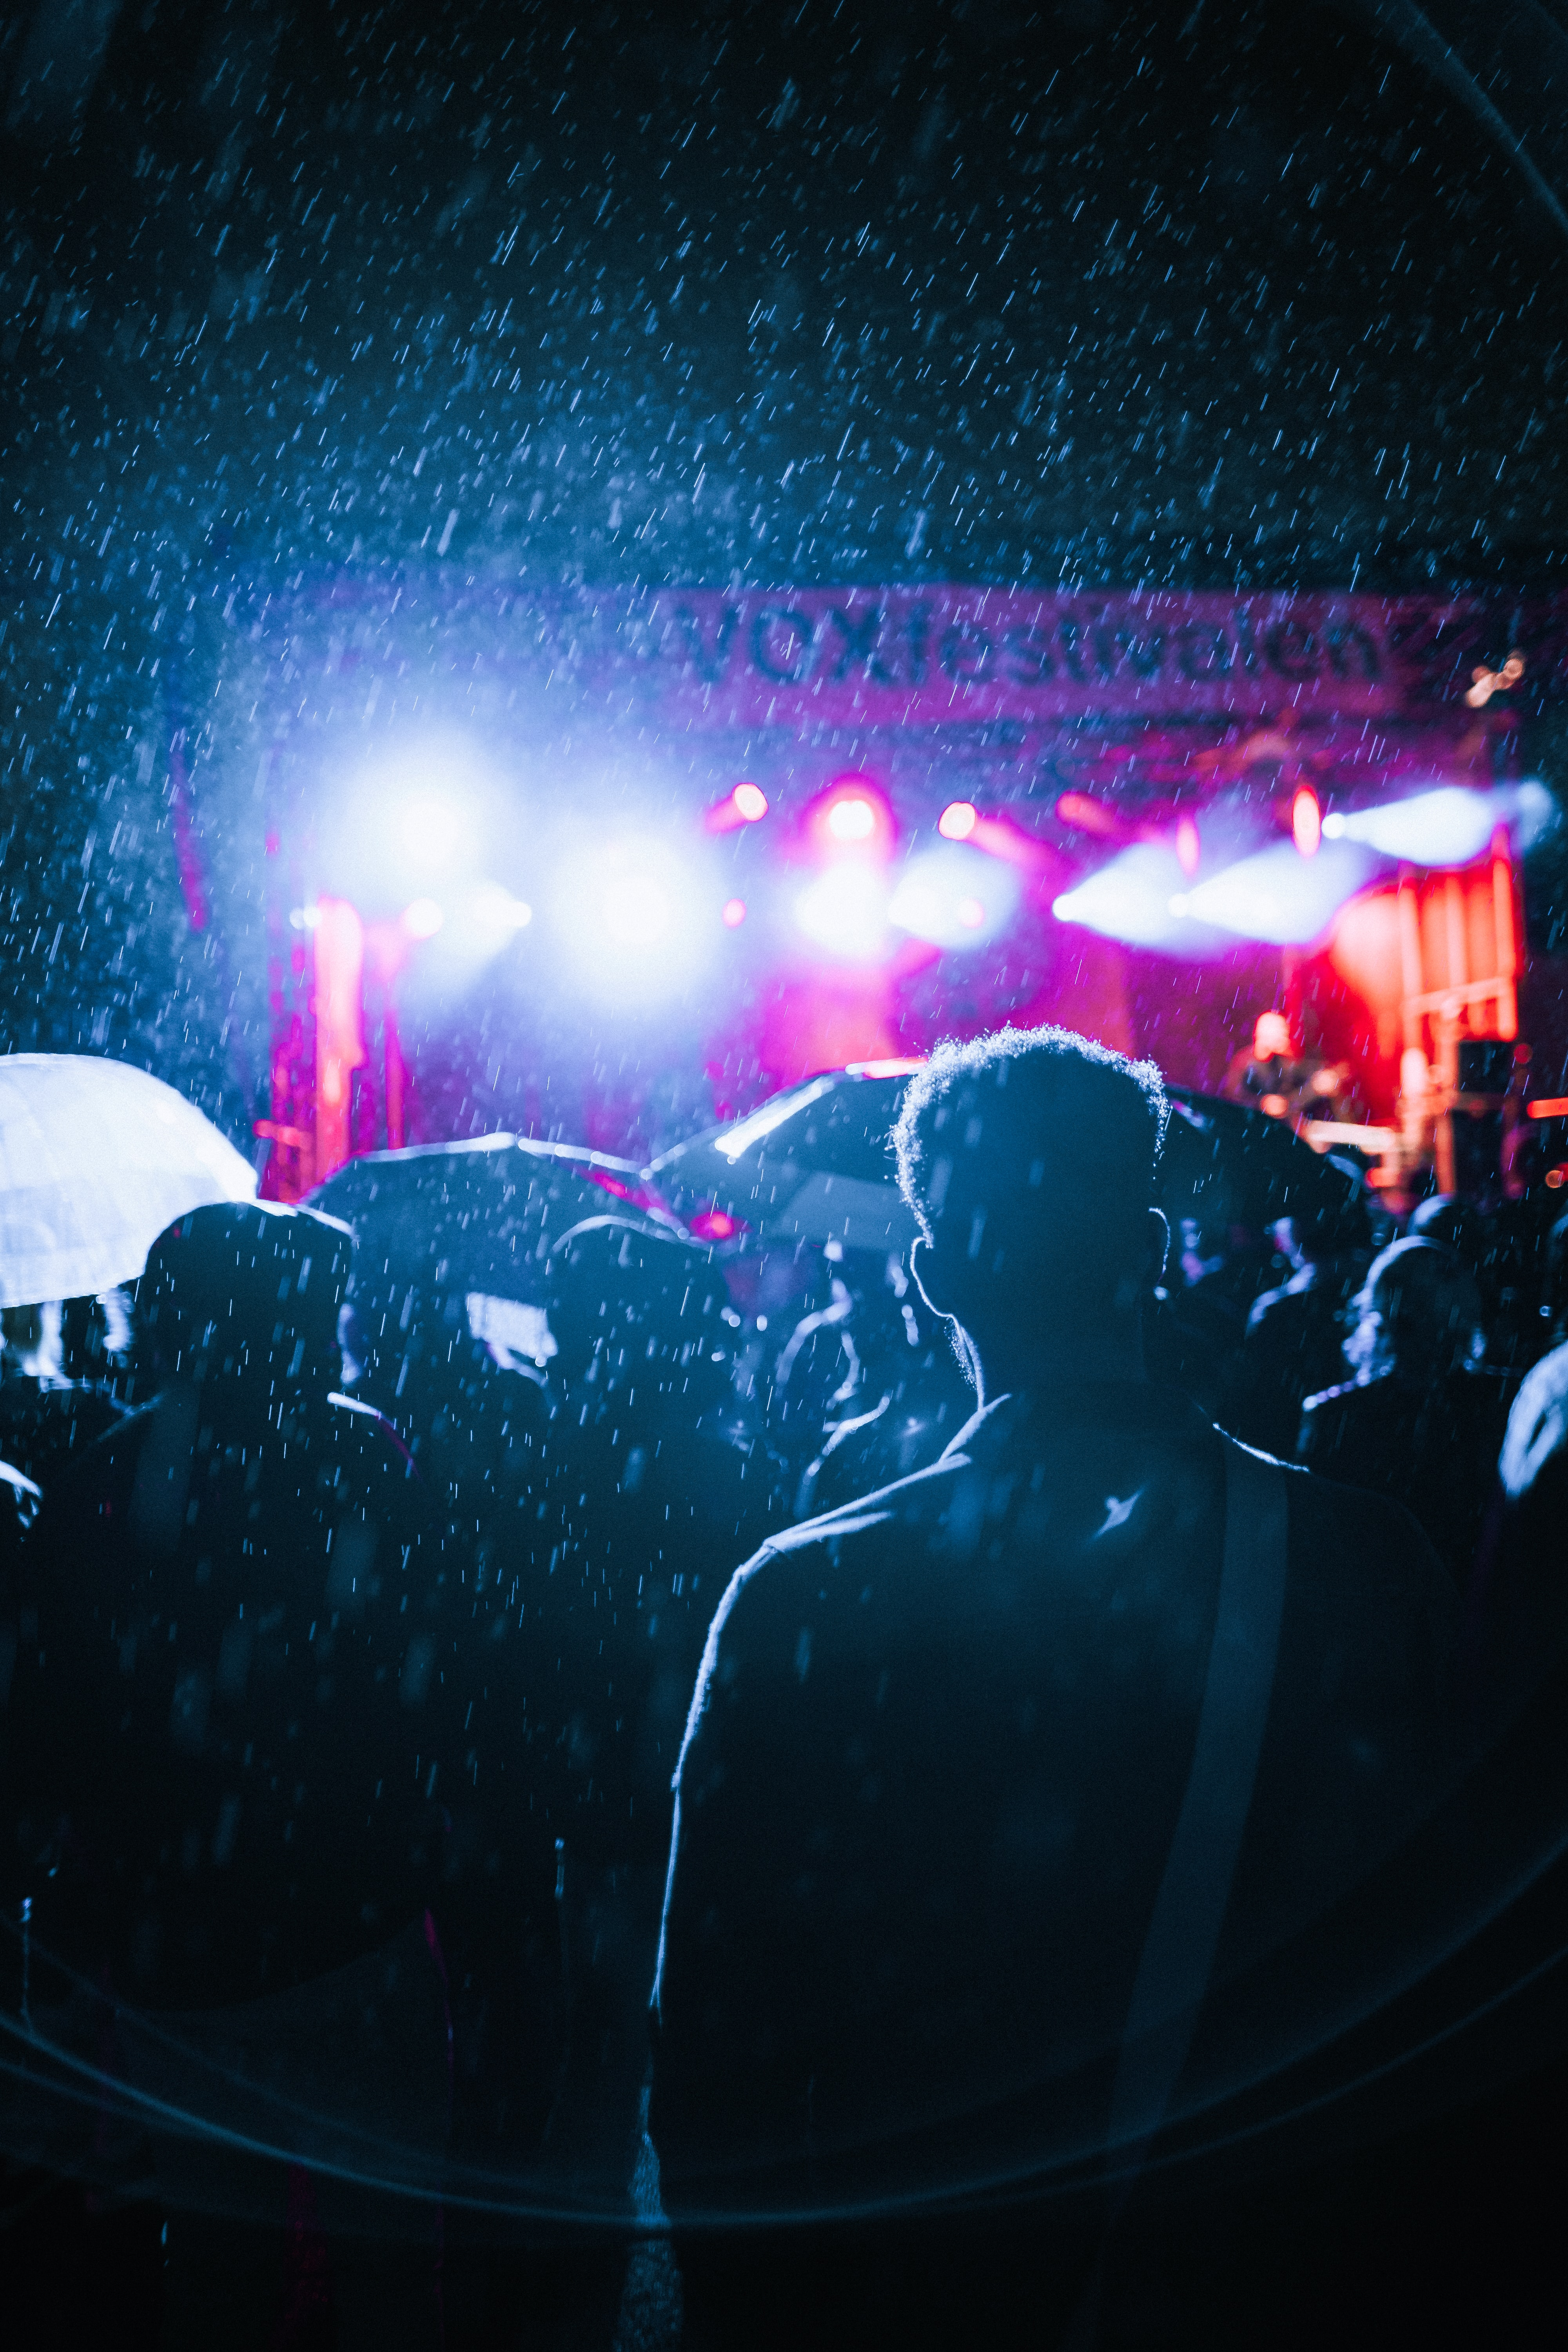 people watching live concert during rain